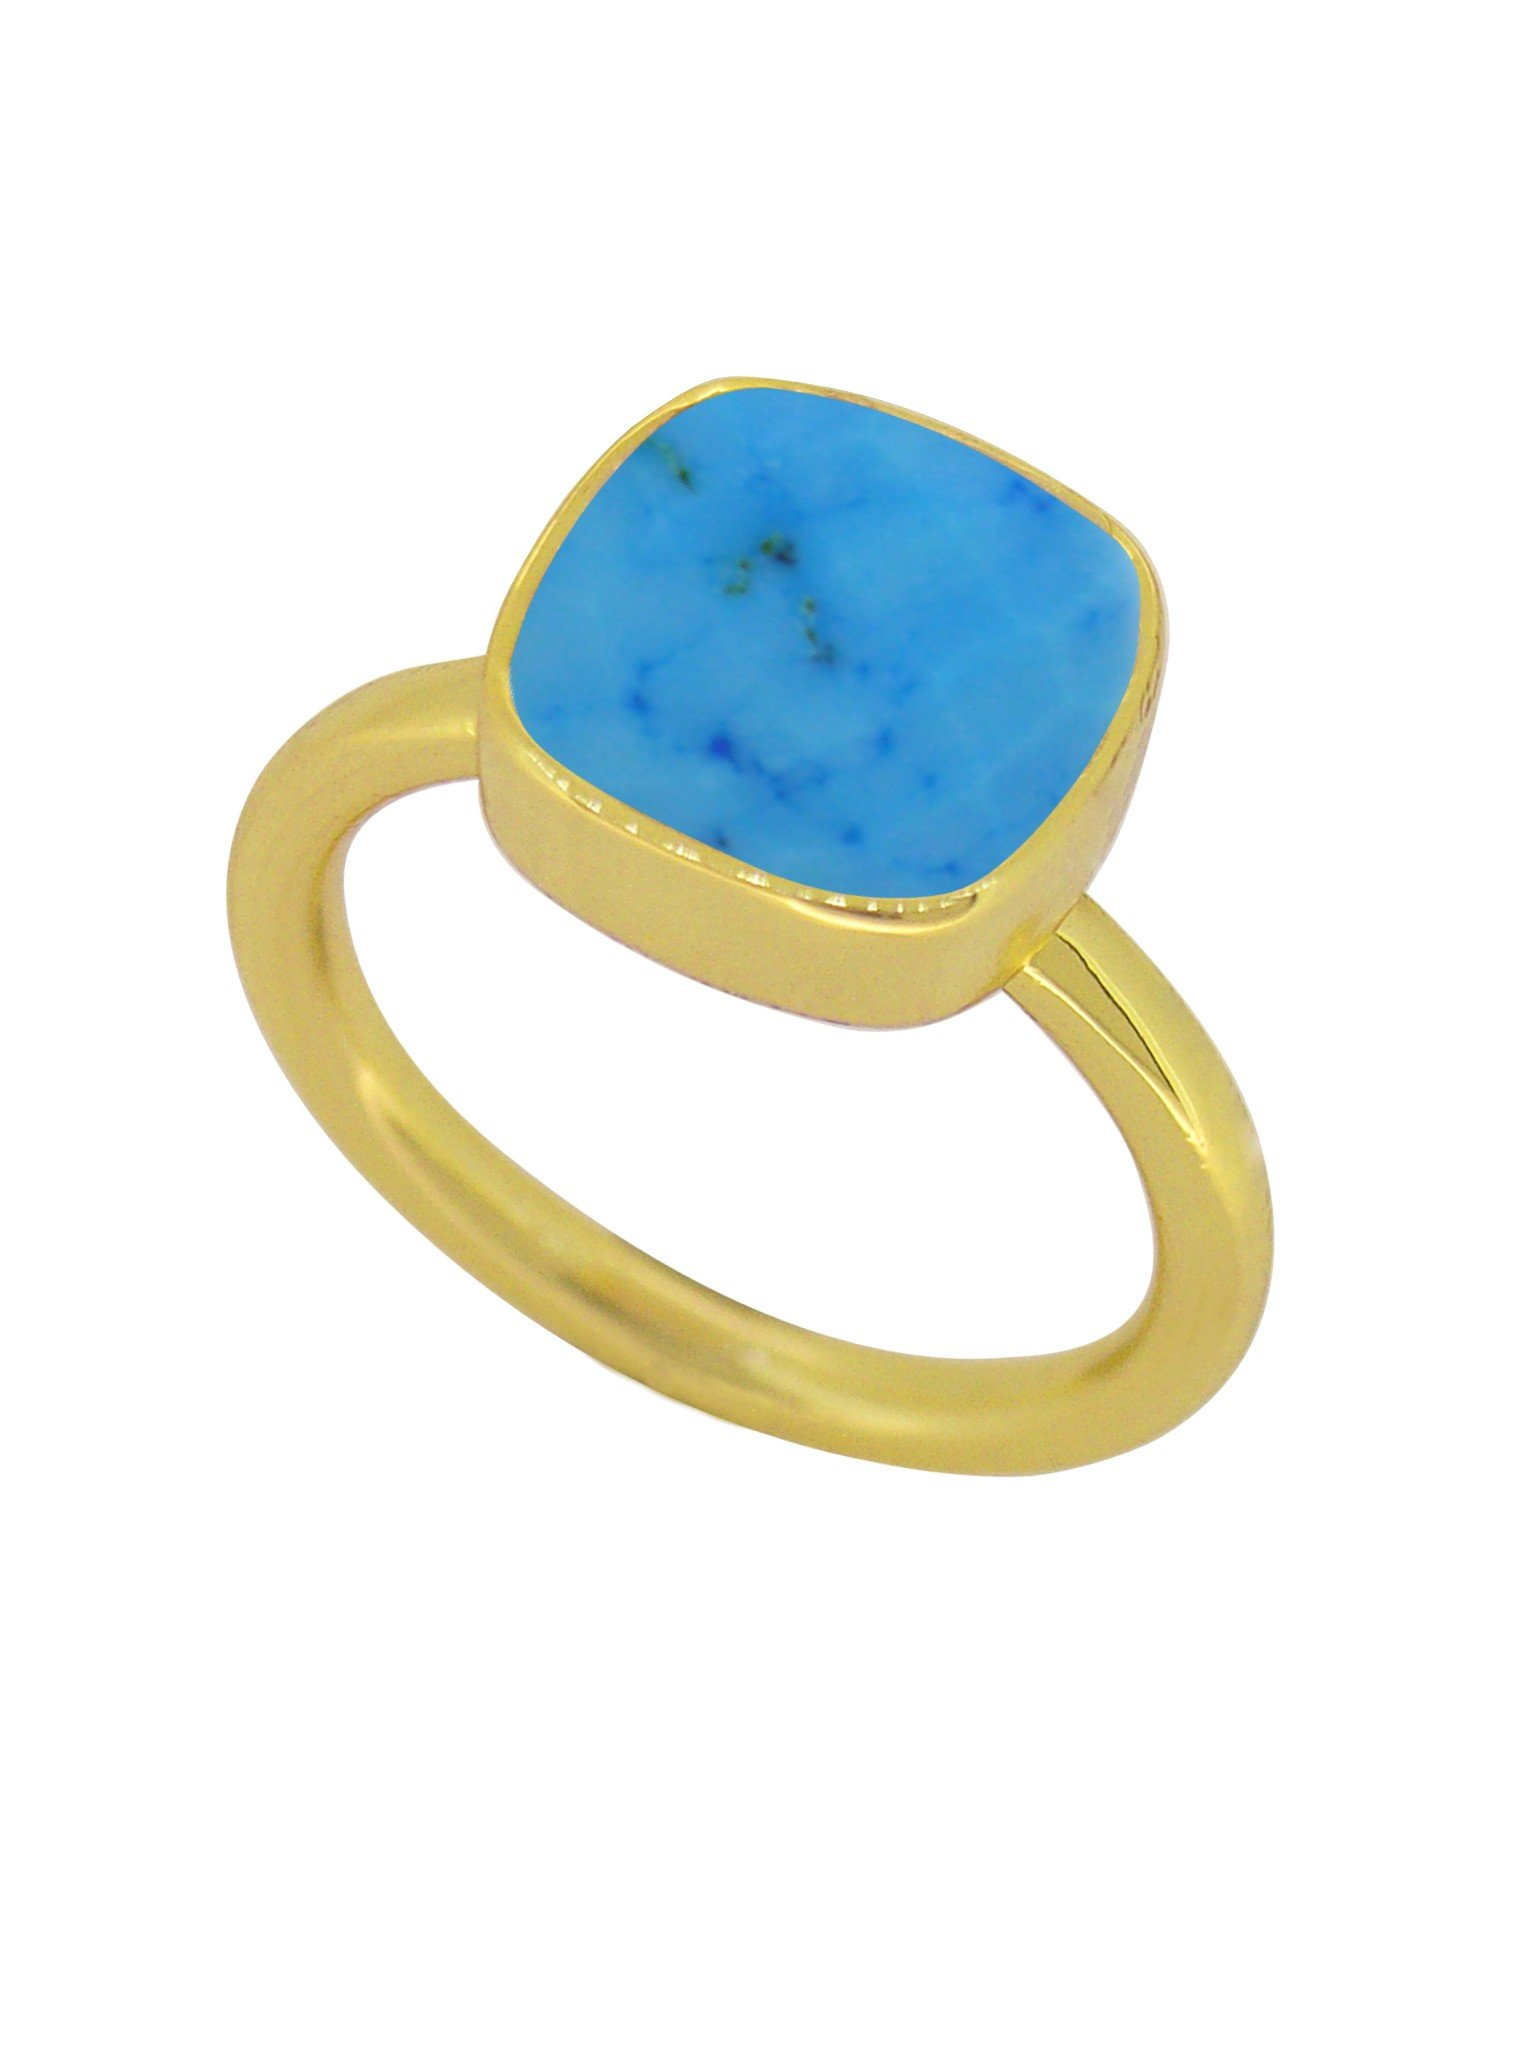 Indie Sleeping Beauty Turquoise Gemstone Ring in Gold